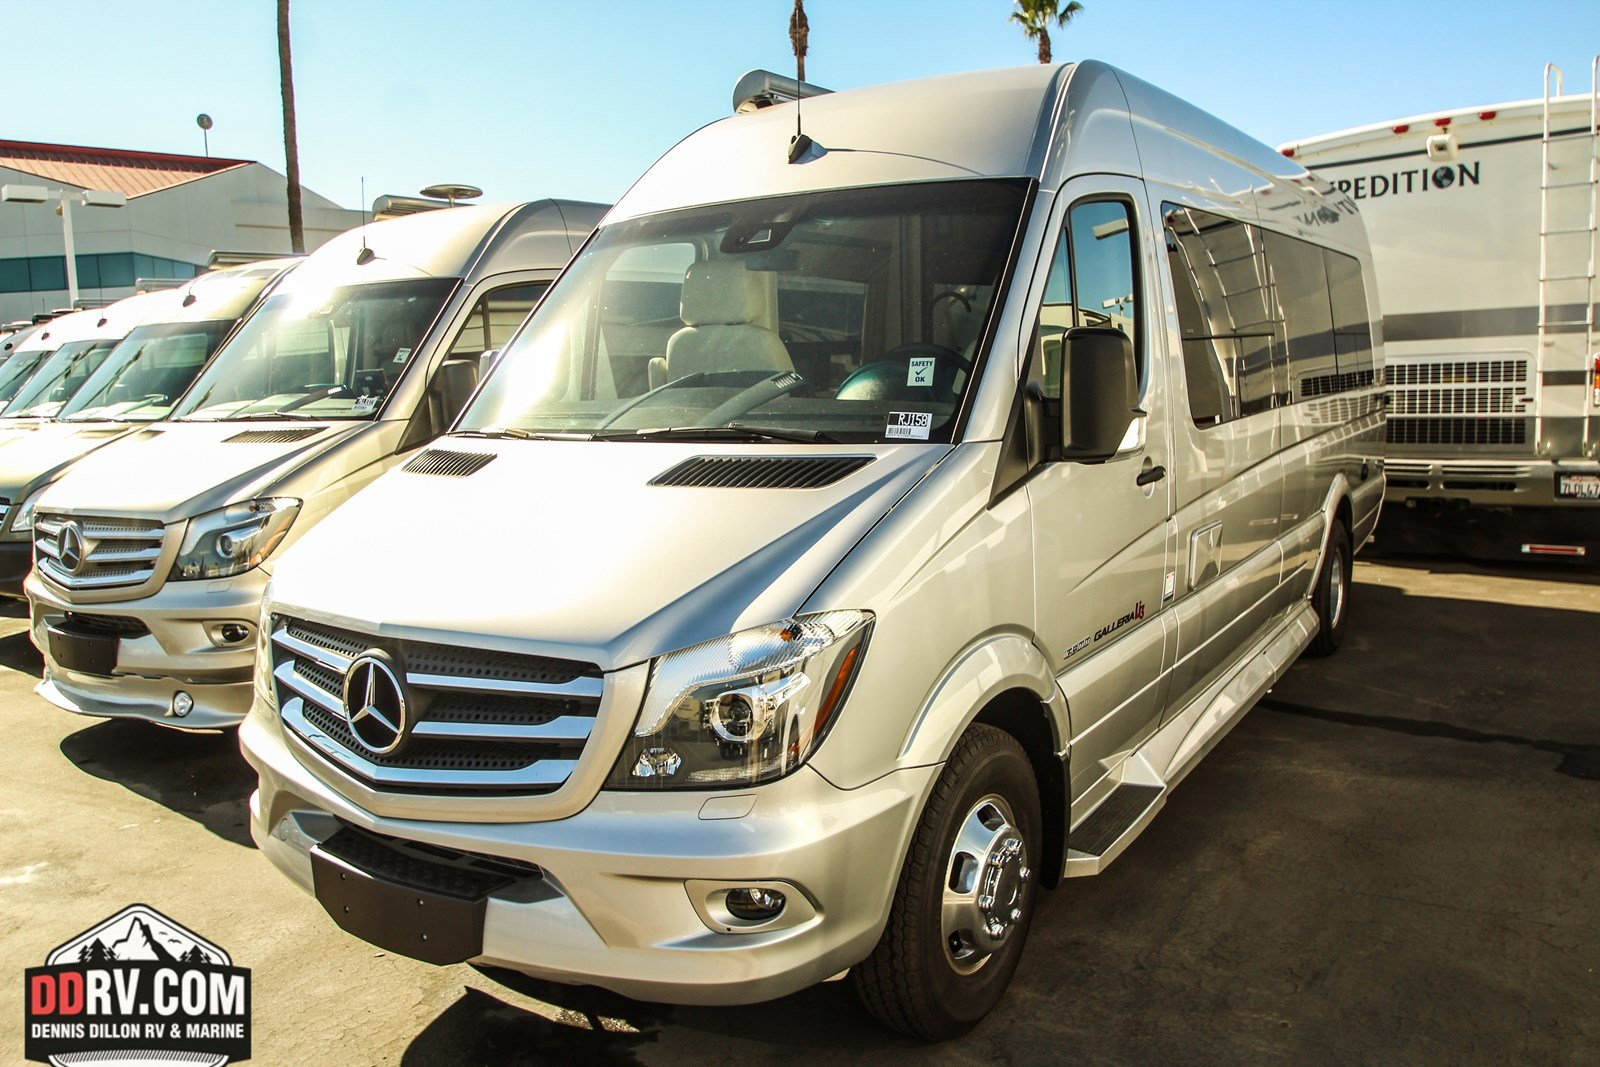 New 2018 COACHMEN GALLERIA 24FL